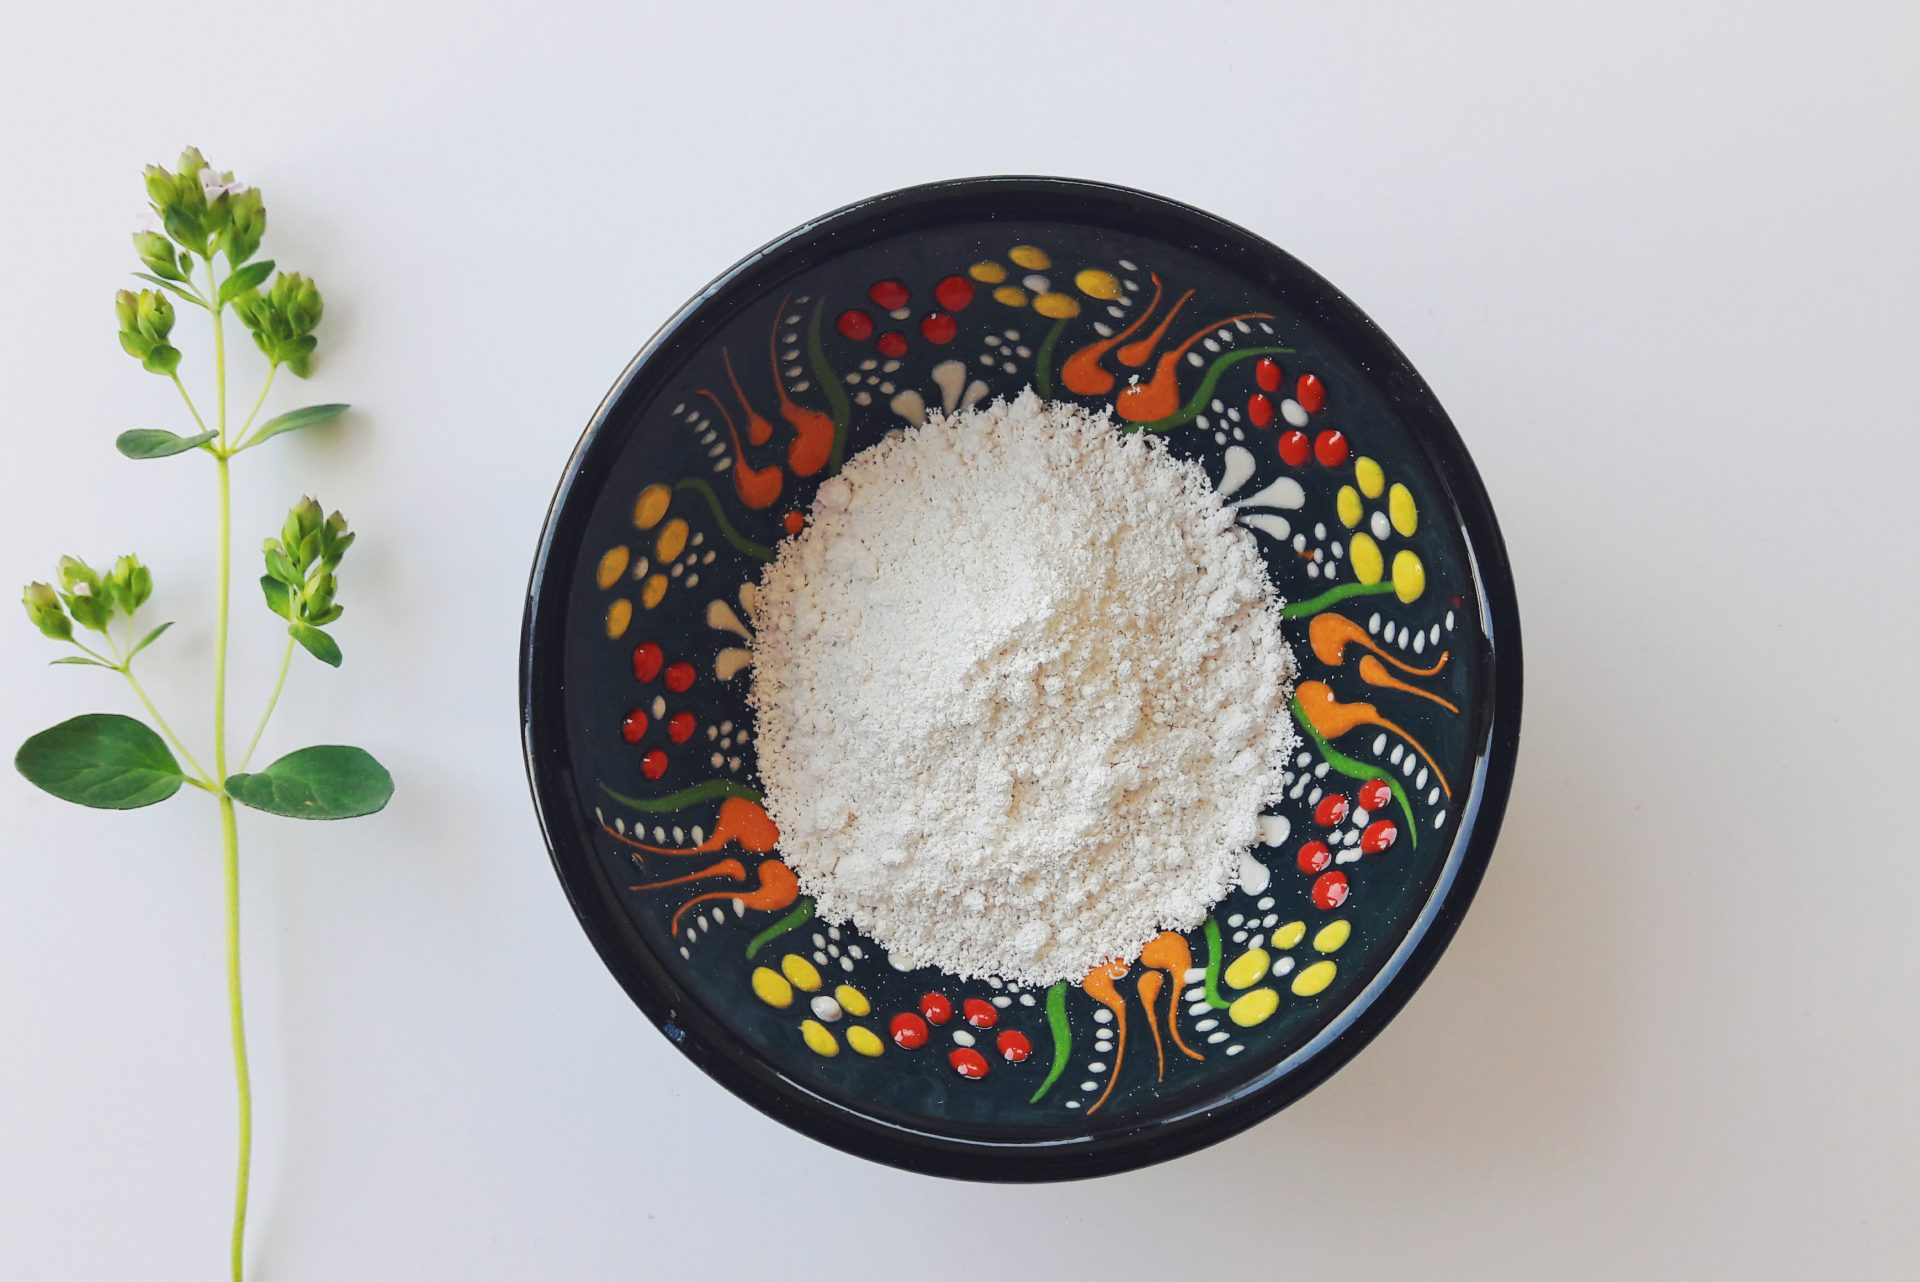 White Kaolin Clay Skin Benefits (How To Use + A Recipe)